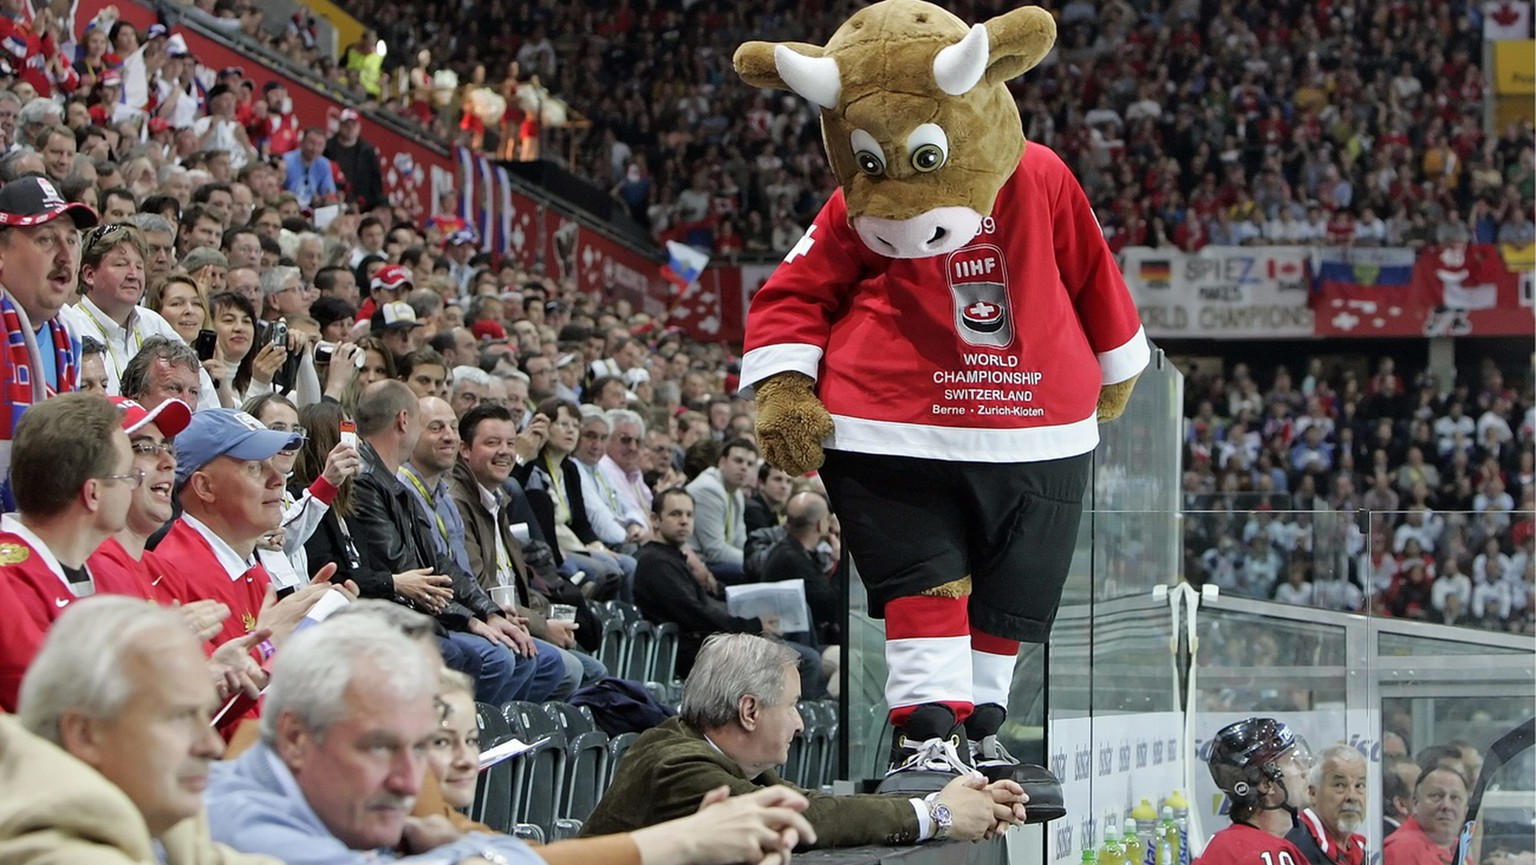 Cooly, the mascot of this championships, during the Gold Medal Game between Russia and Canada at the IIHF 2009 World Championship at the Postfinance-Arena in Berne, Switzerland, on Sunday May 10, 2009. (KEYSTONE/Patrick B. Kraemer)